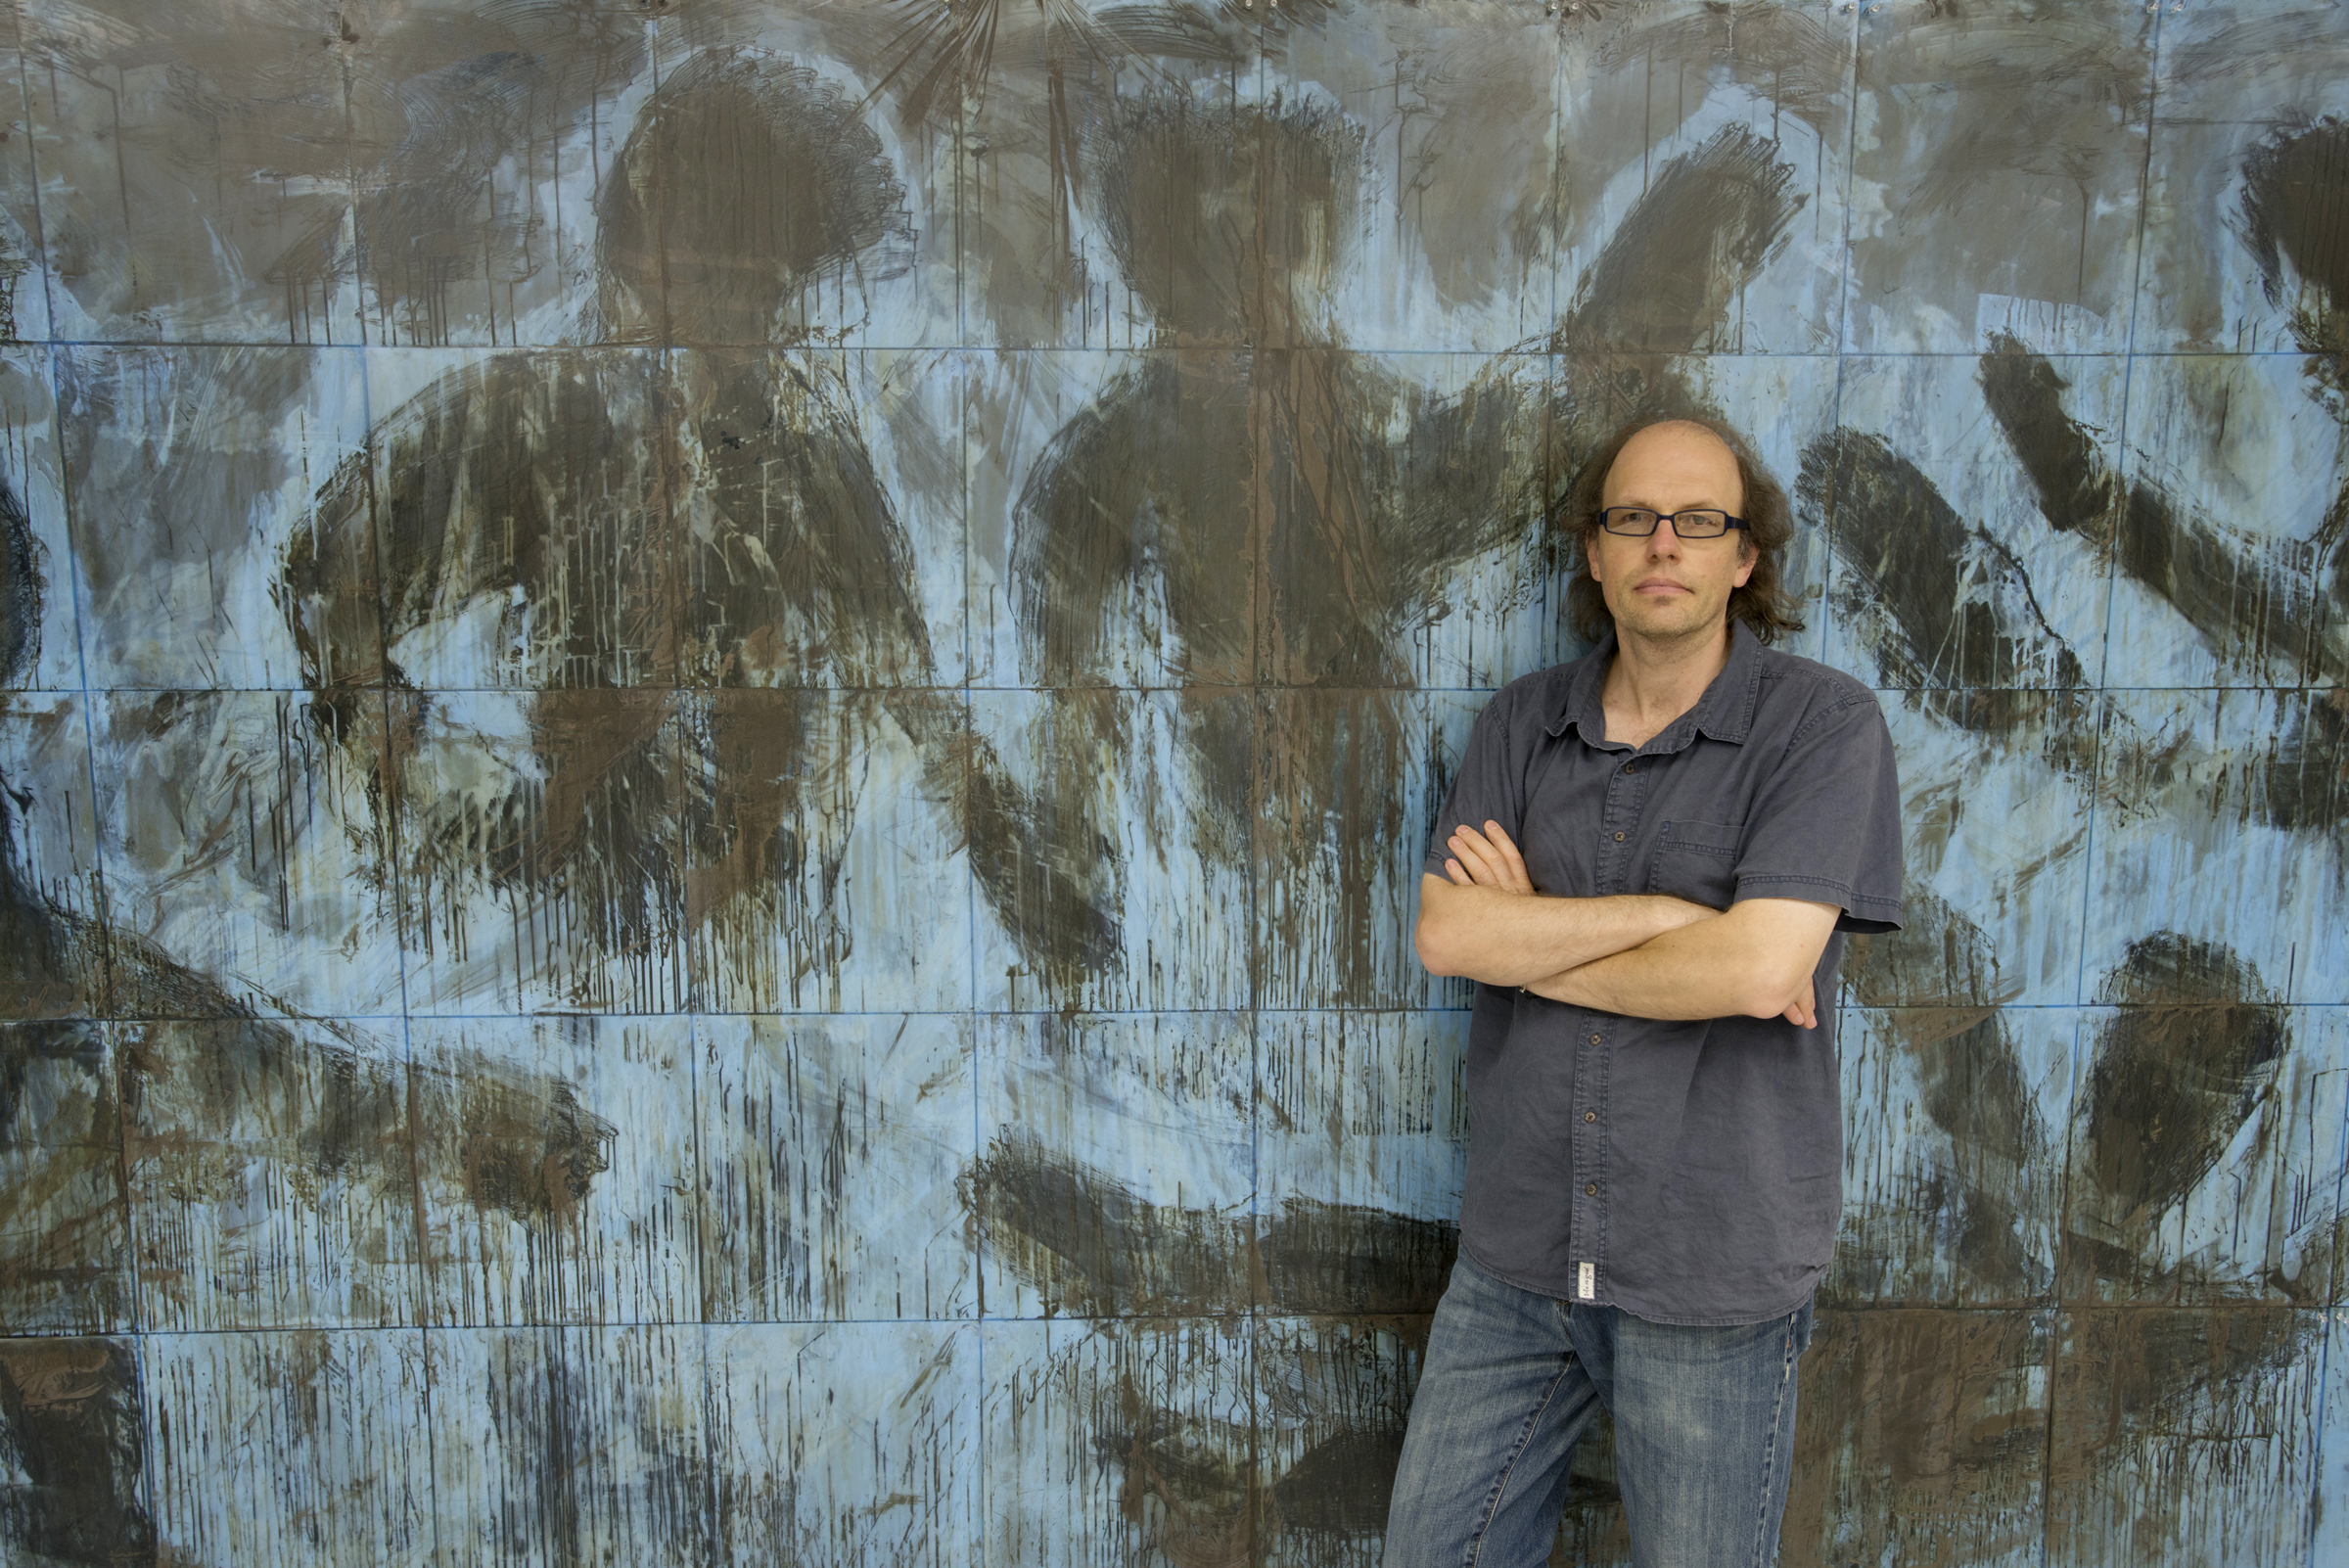 Andreas Rentsch resides in Huntington village and teaches photography at Stony Brook University.